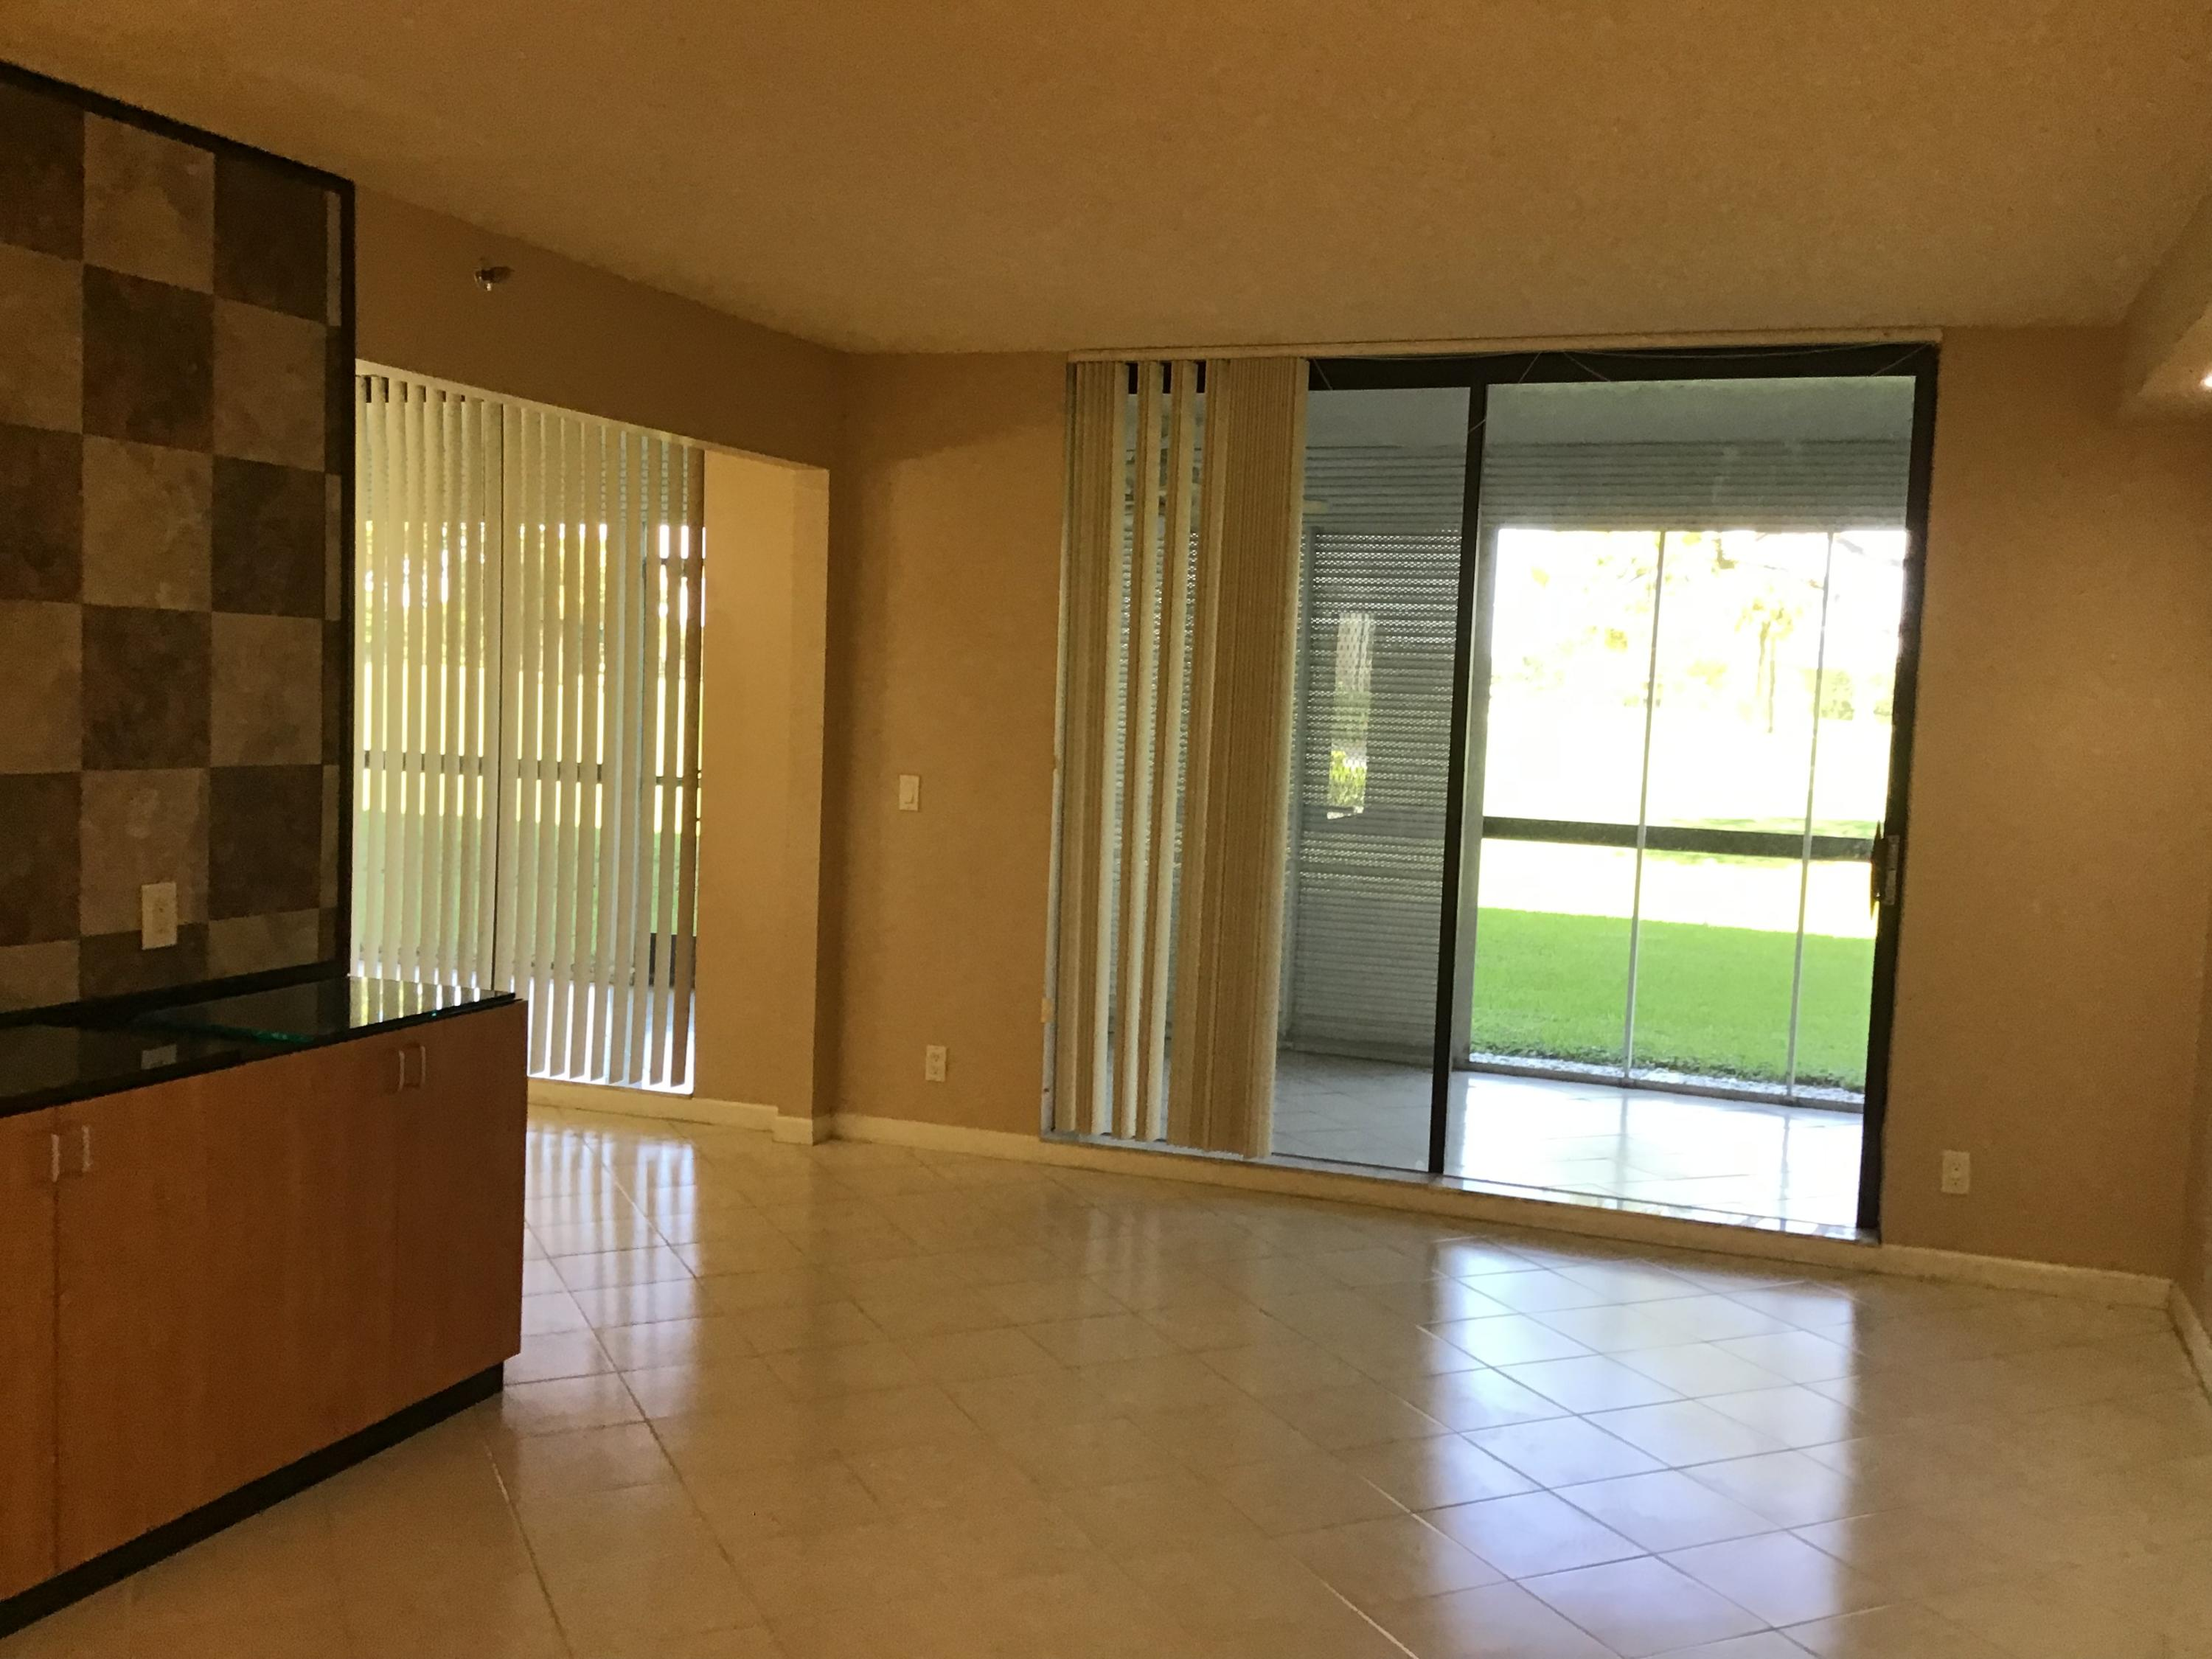 5301 Fountains Drive, Lake Worth, Florida 33467, 2 Bedrooms Bedrooms, ,2 BathroomsBathrooms,Rental,For Rent,Fountains,RX-10555623